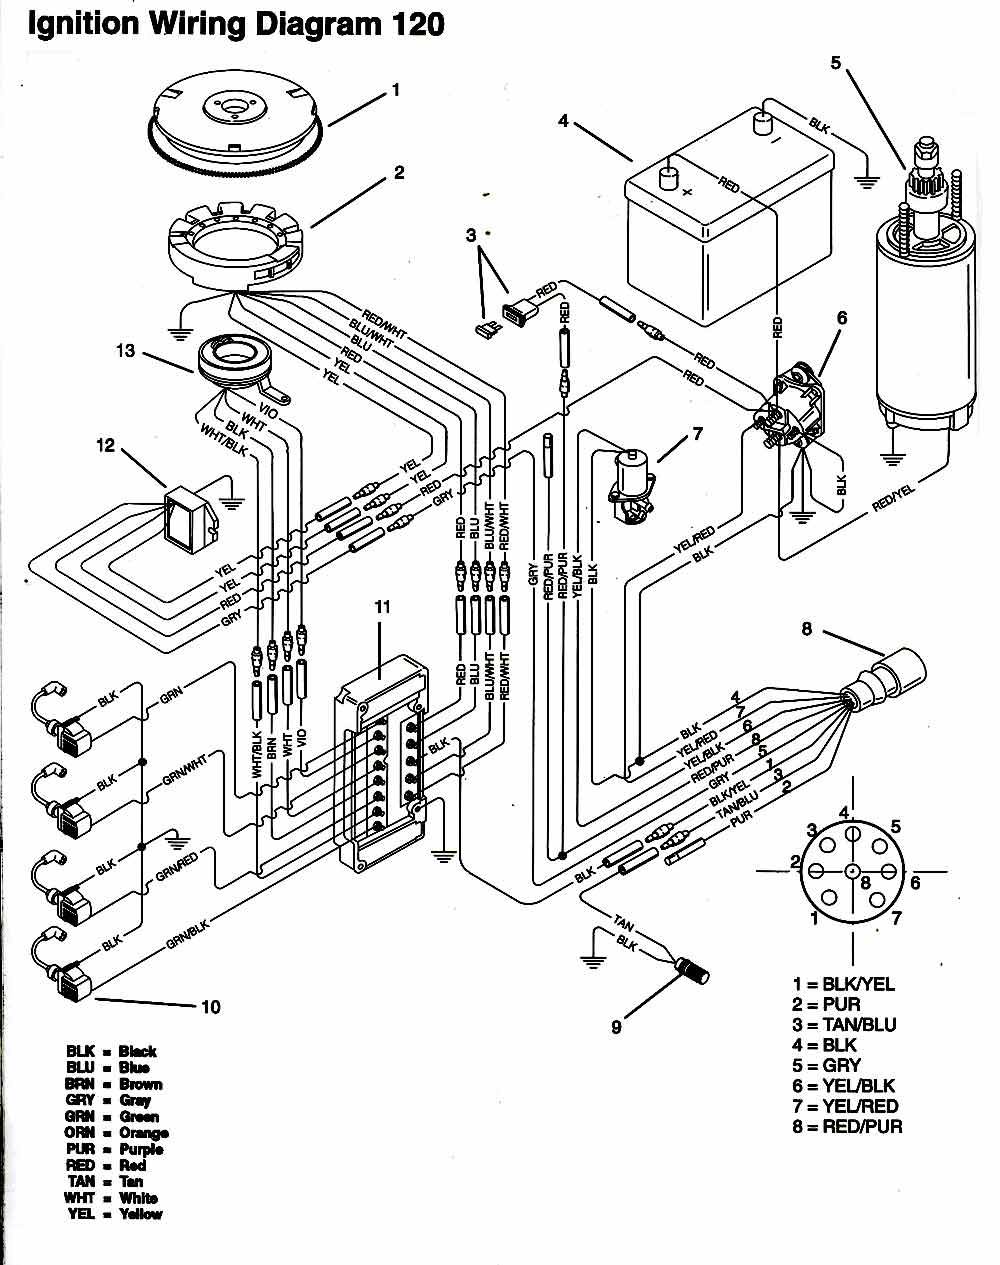 Mercruiser Electric Fuel Pump Wiring Diagram As Well Mercury 150 2014 Maycar Page 60 Chrysler Outboard Diagrams Mastertech Marine Rh Maxrules Com